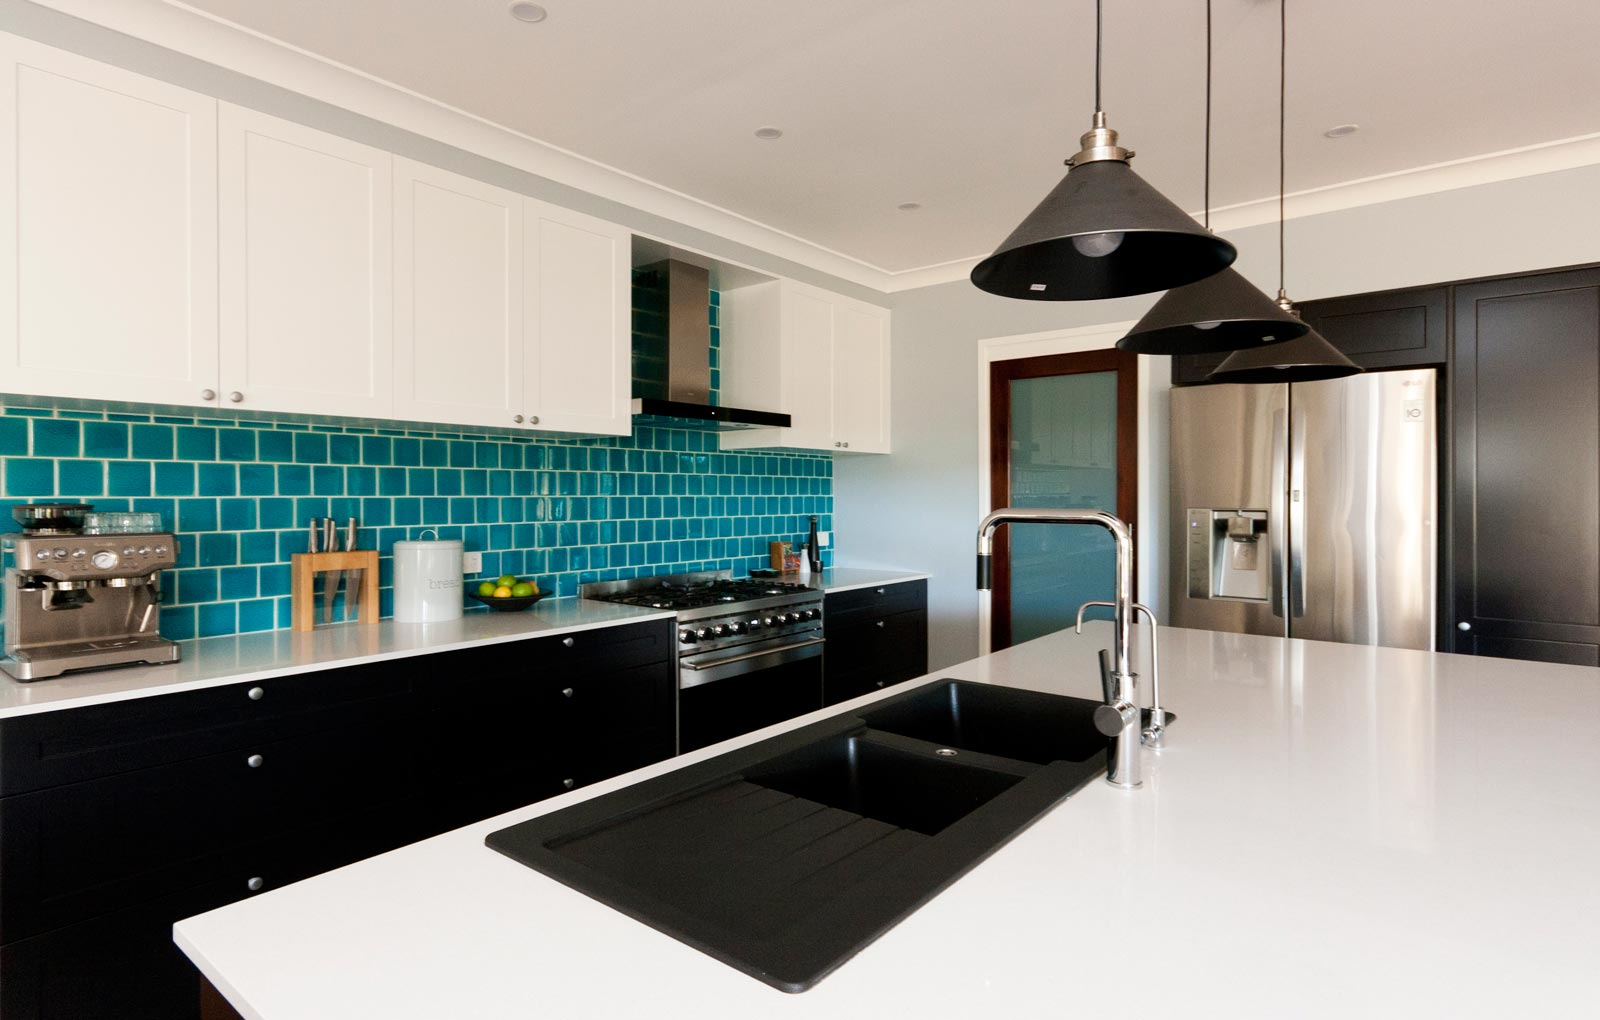 kitchen-design-after-kitchen-renovation-black-white-polyurethane ...